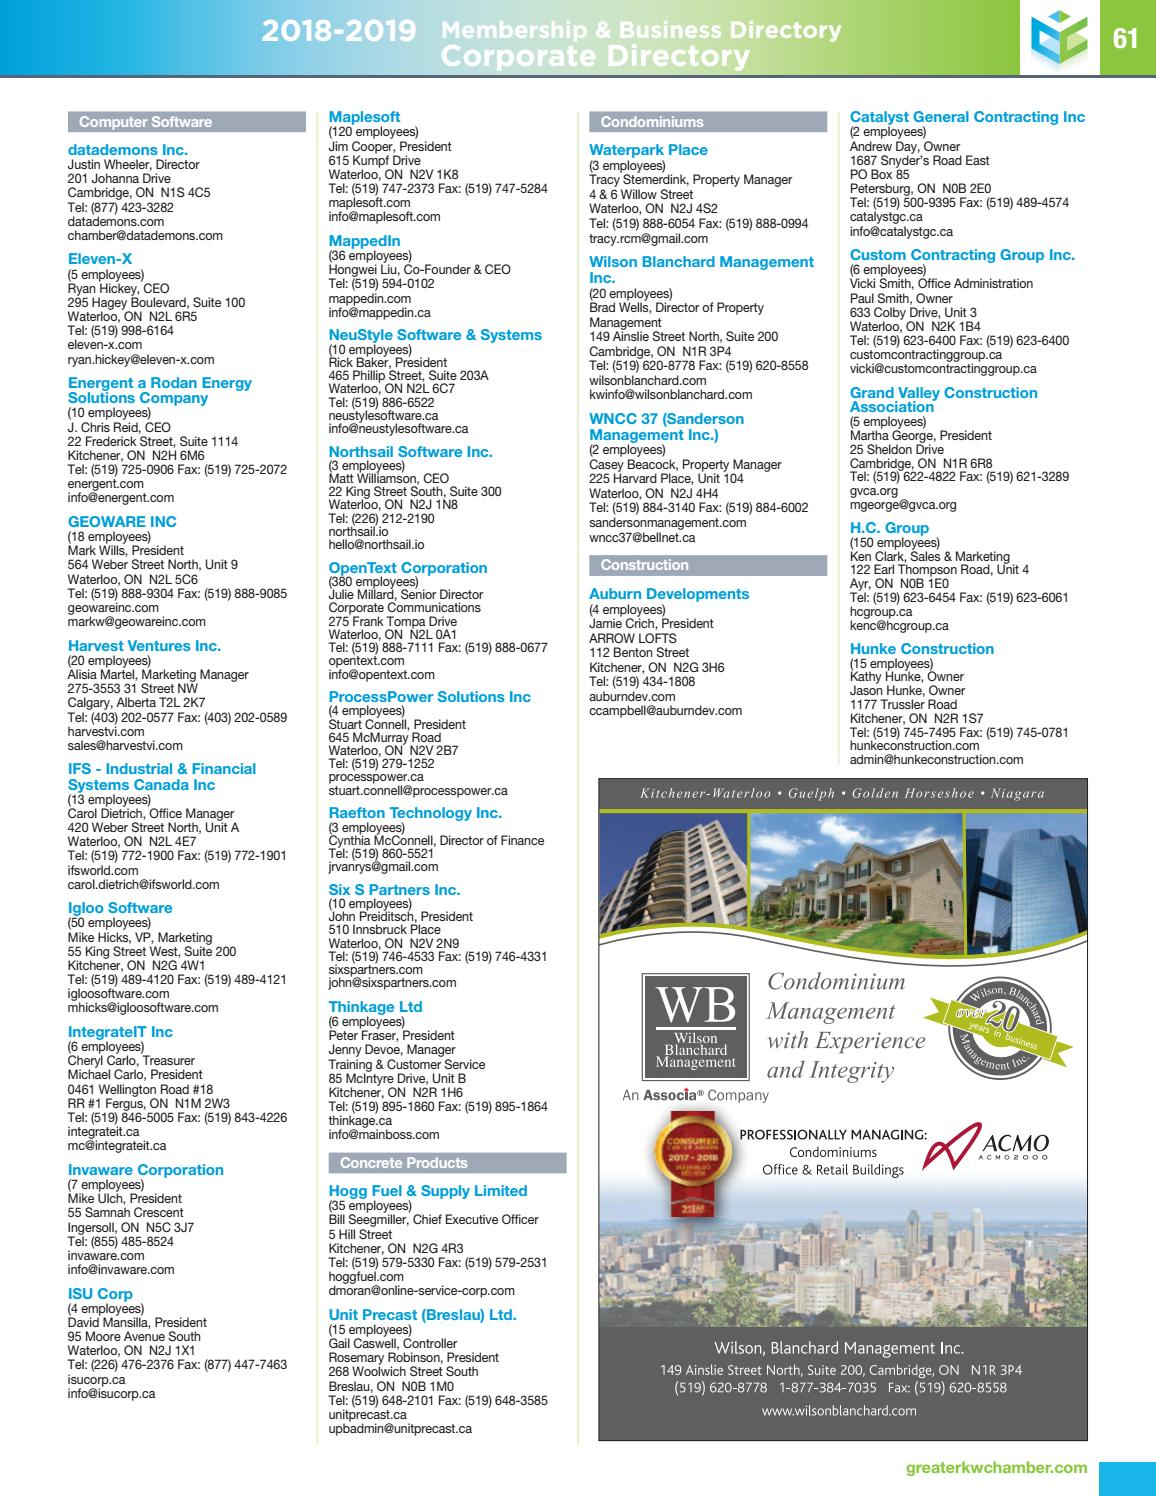 Membership and Business Directory 2018-2019 by Natalie Hemmerich - issuu